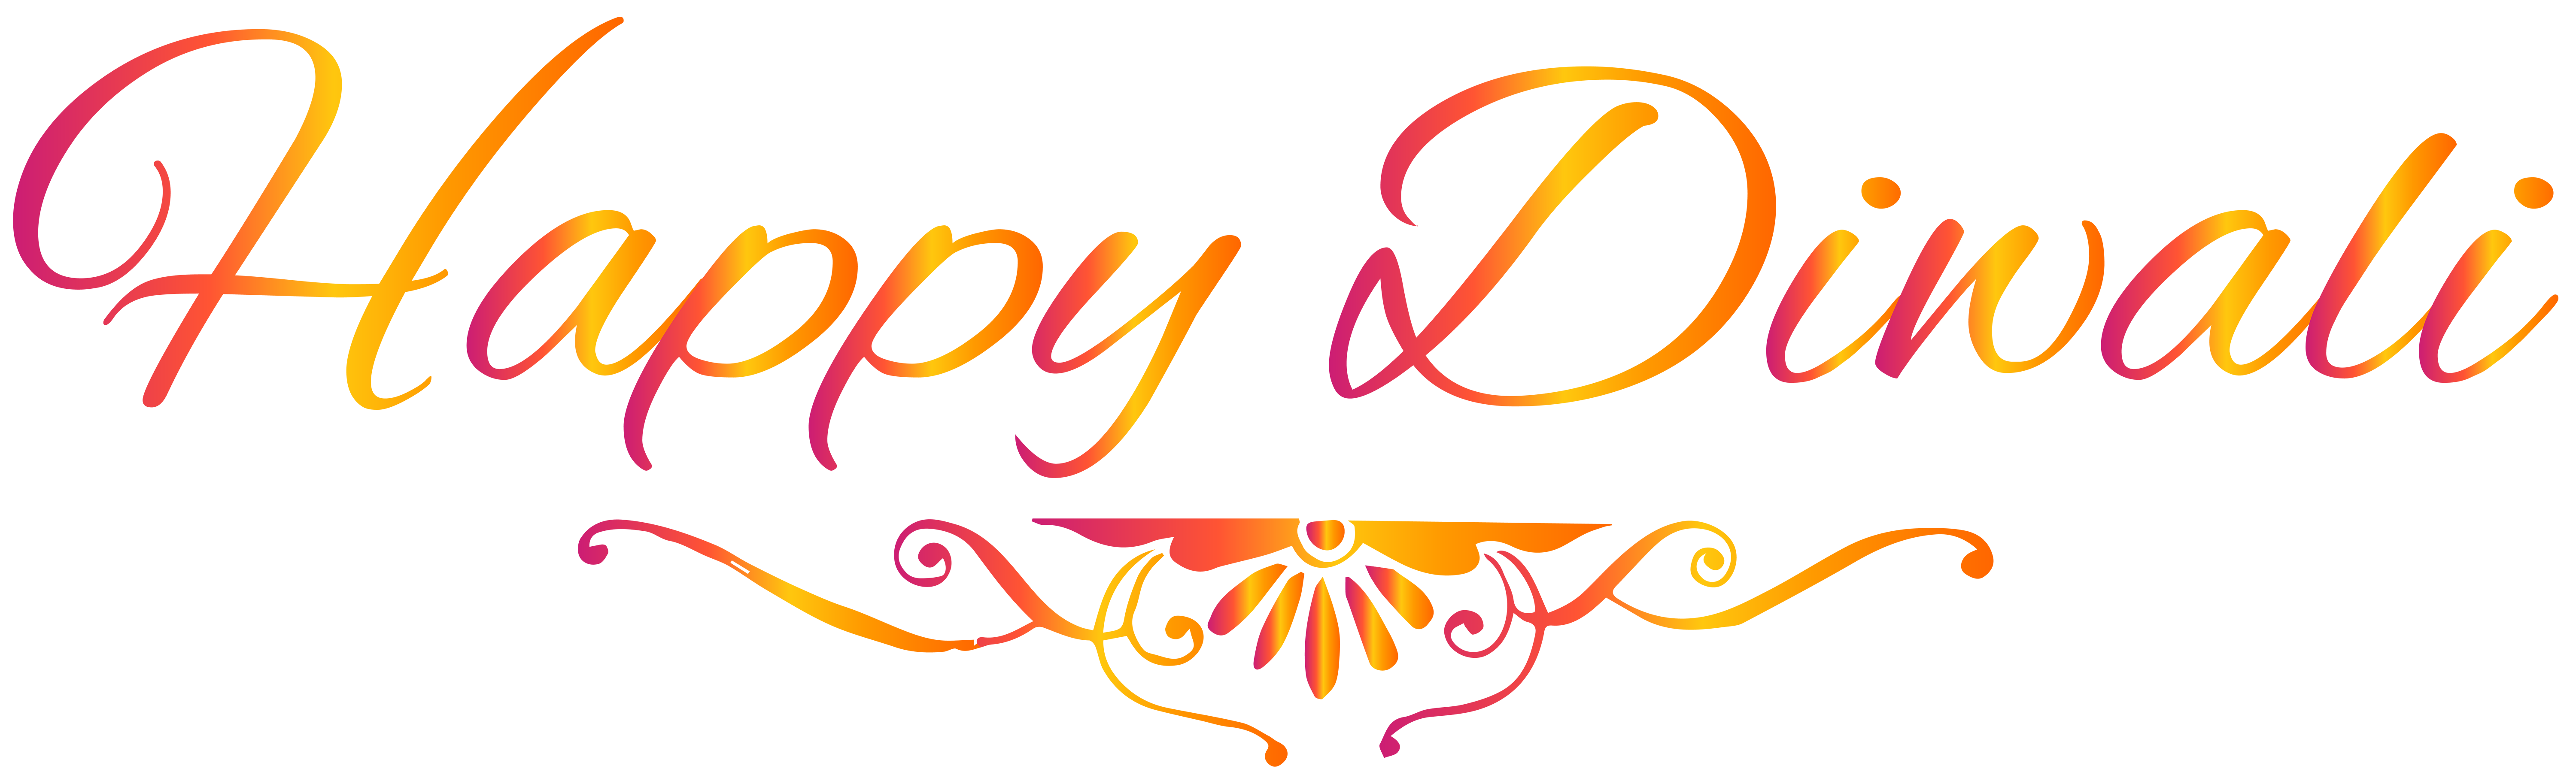 Happy diwali png clip. Stress clipart high stress